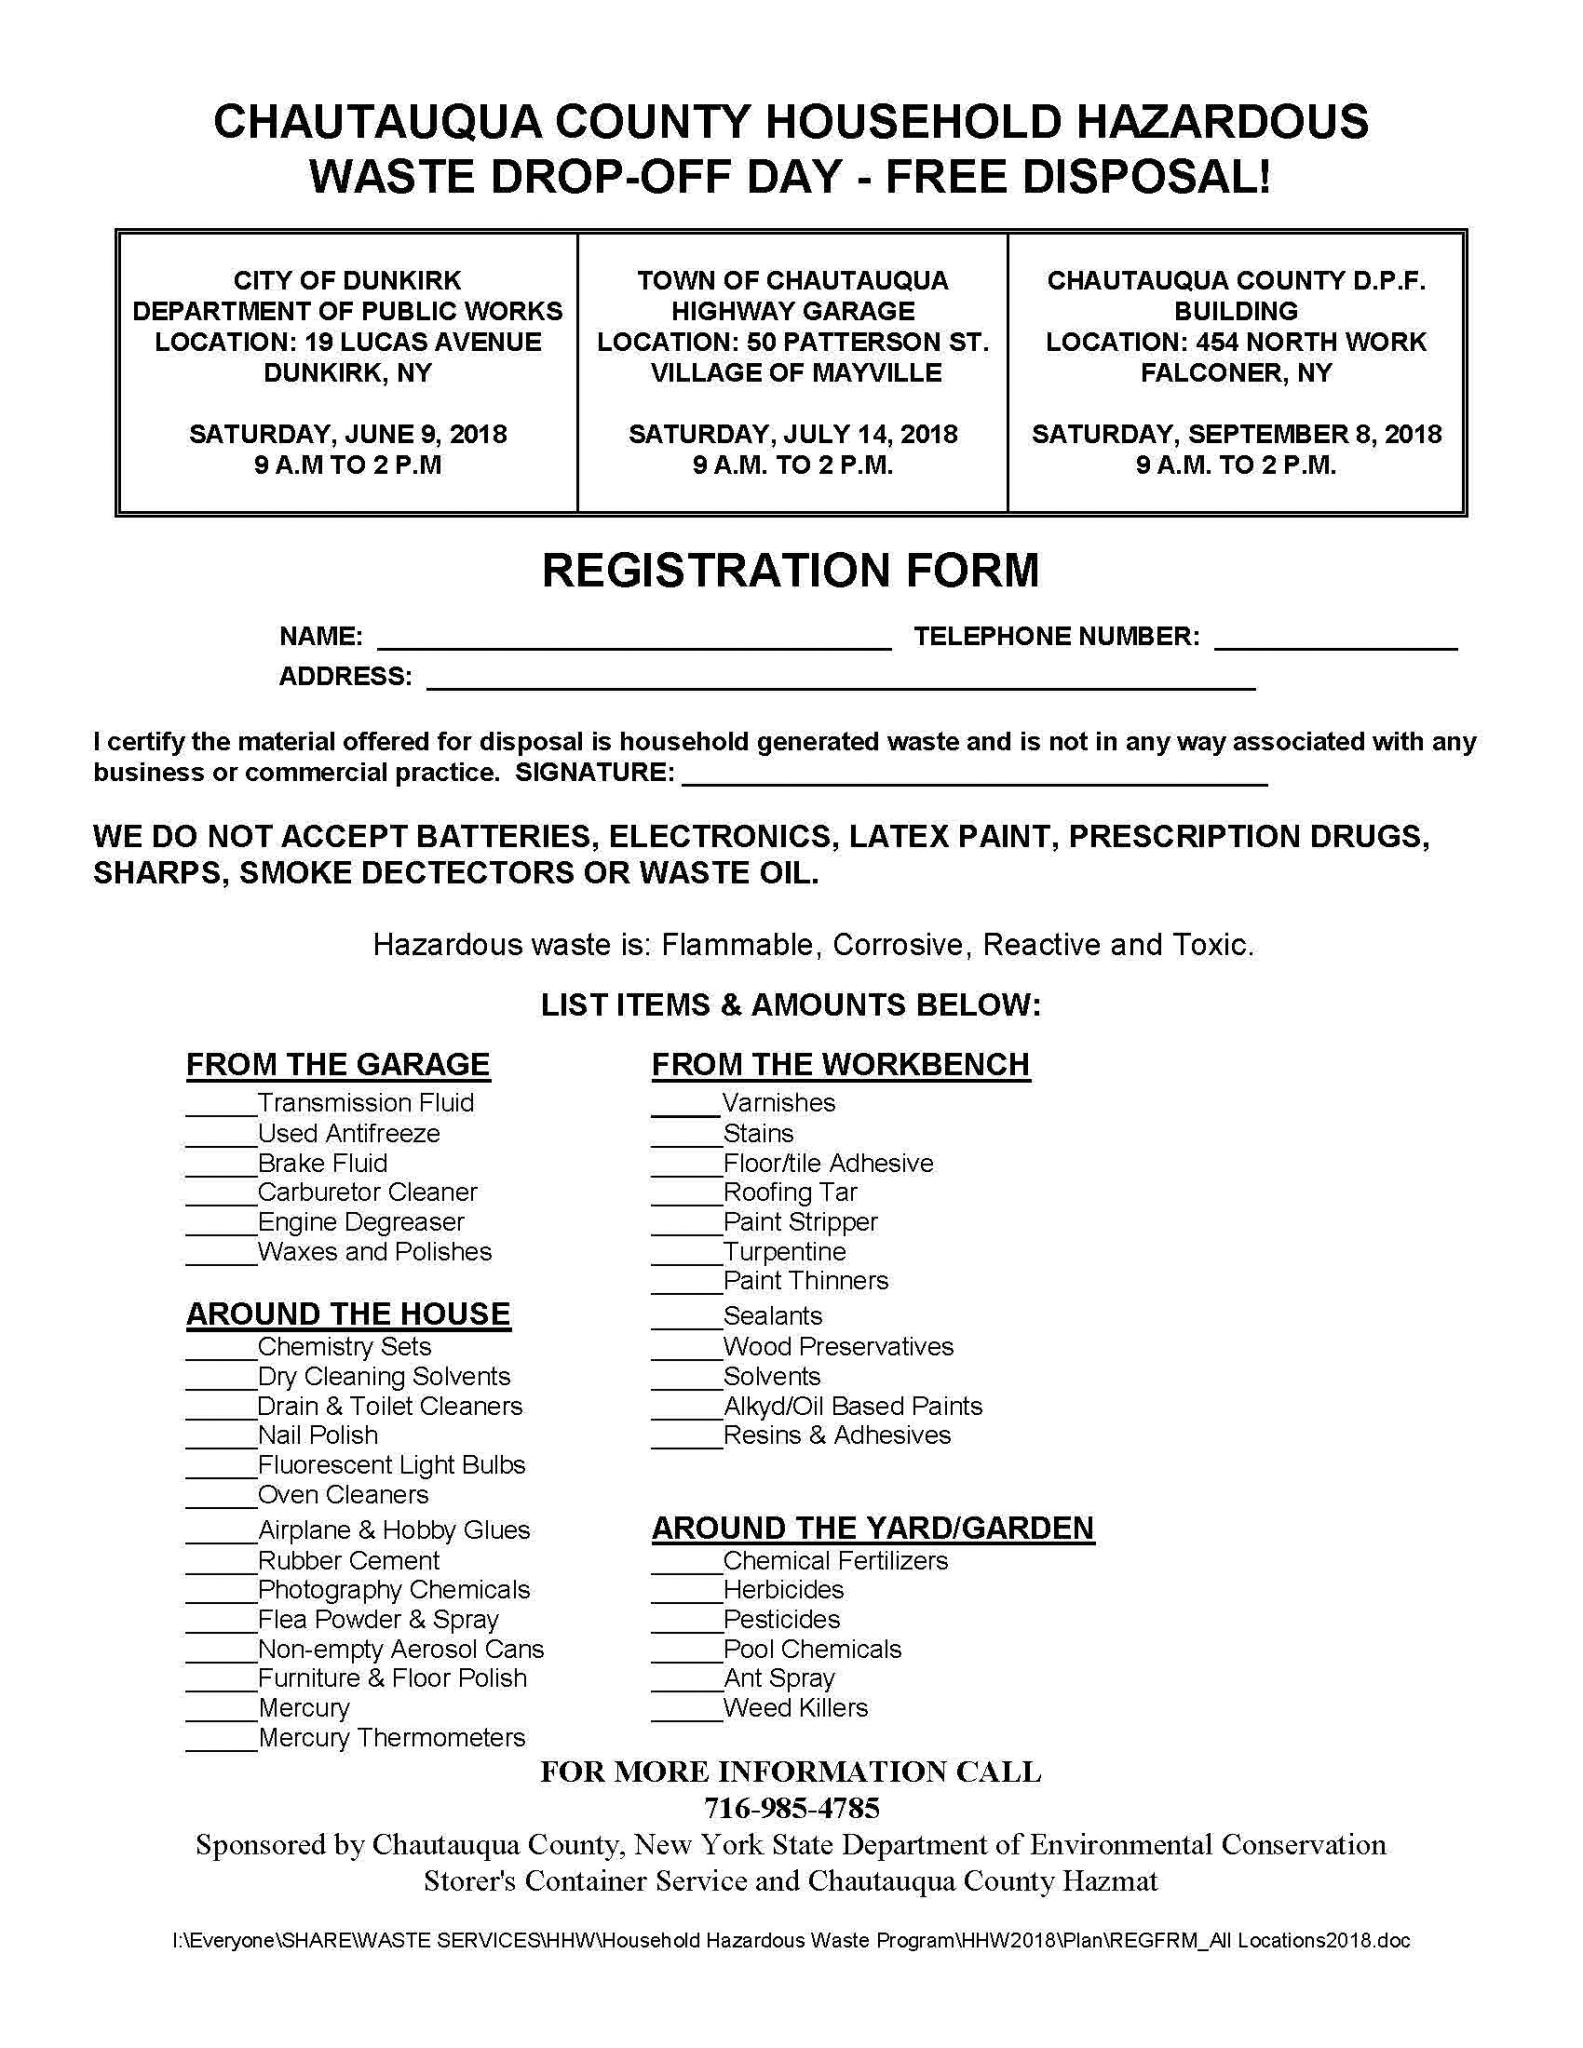 Chautauqua County Household Hazardous Waste Drop-Off Day